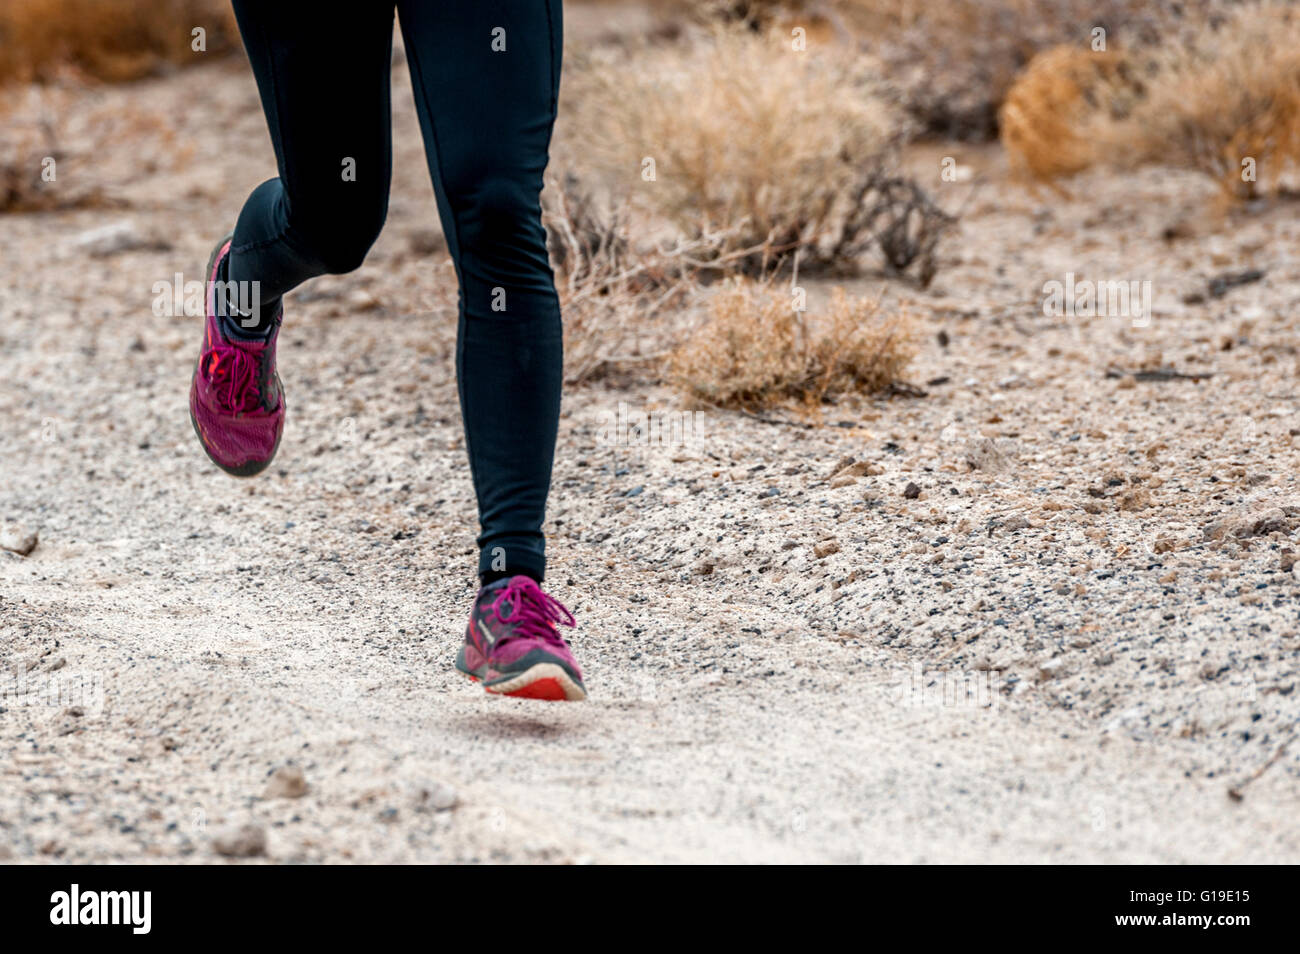 tight shot of legs and feet trail running - Stock Image